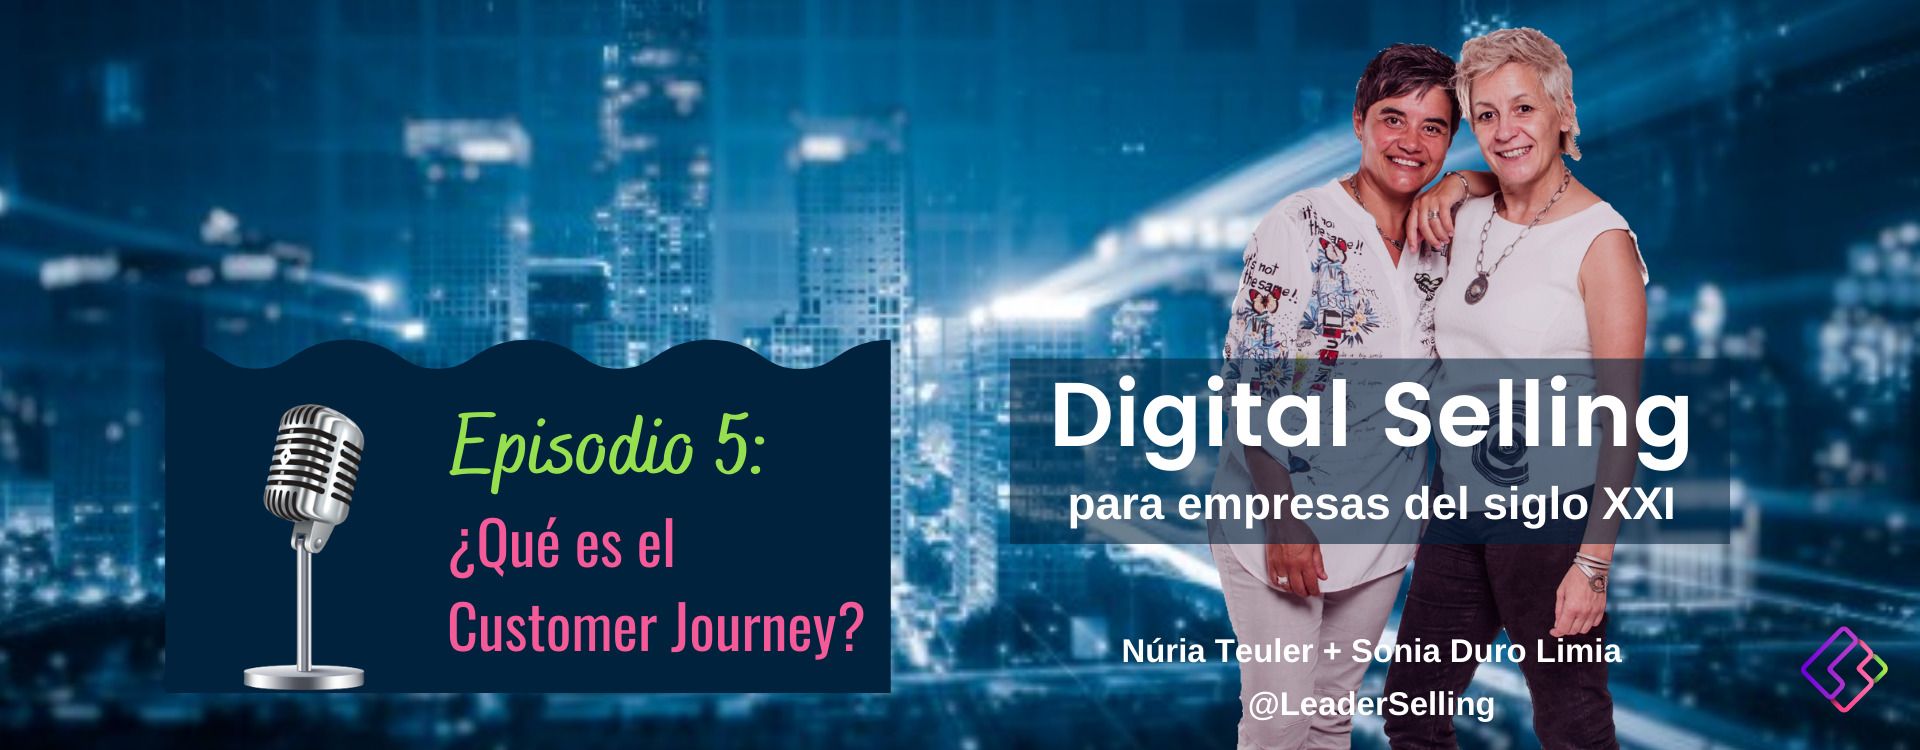 Episodio 5. ¿Qué es el Customer Journey?